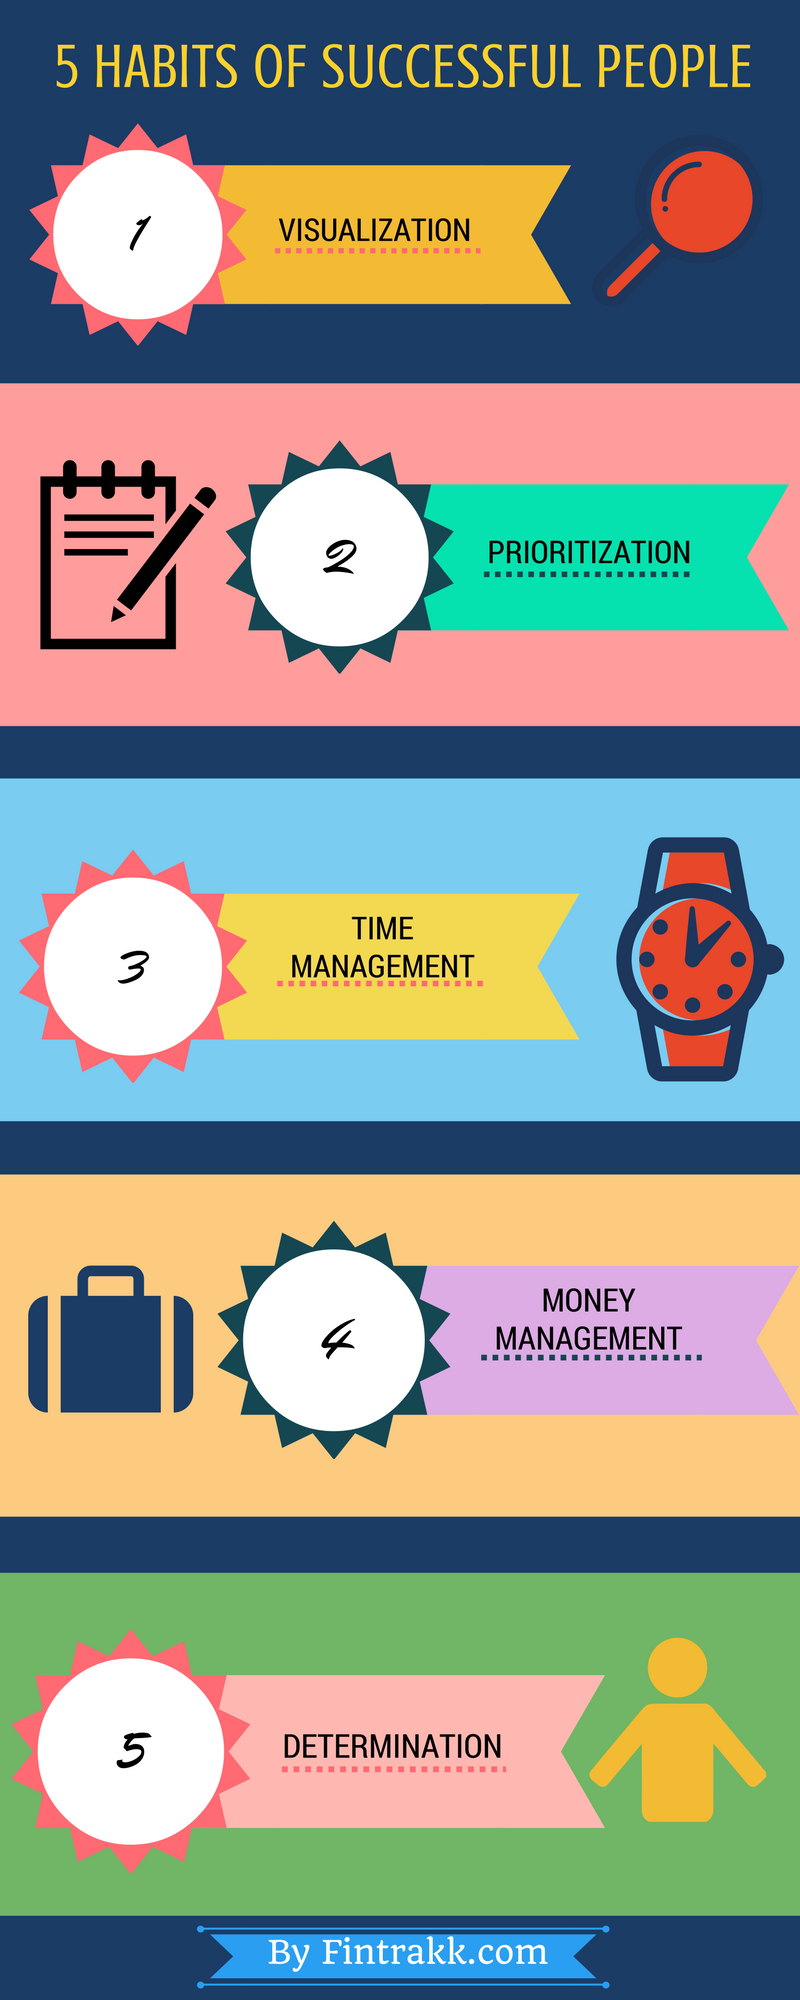 5 Habits Of Successful People #infographic #Successful People #Habits